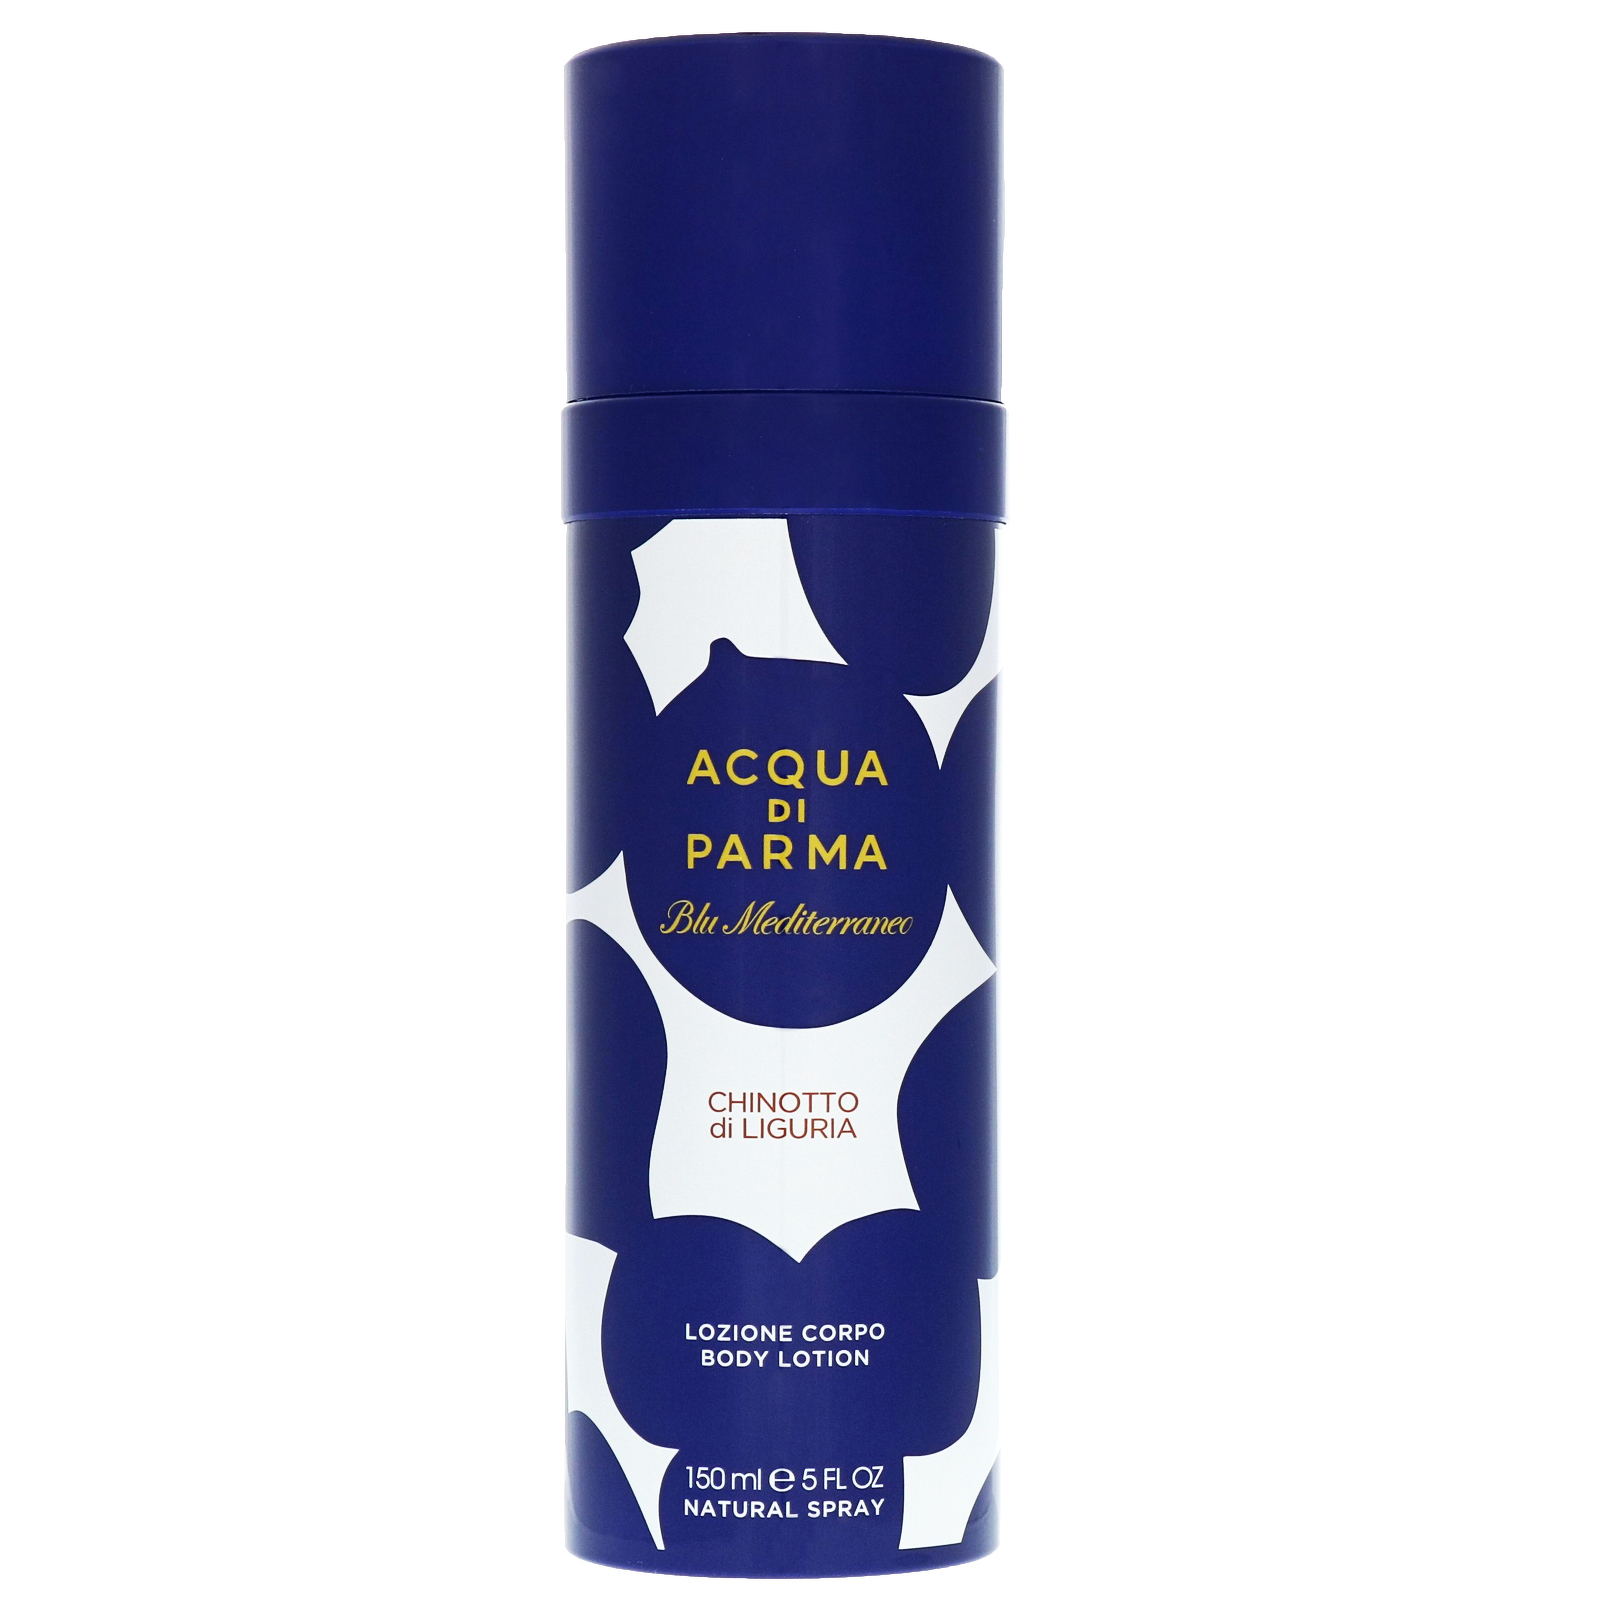 Acqua Di Parma Blu Mediterraneo - Chinotto Di Liguria Body Lotion 150ml